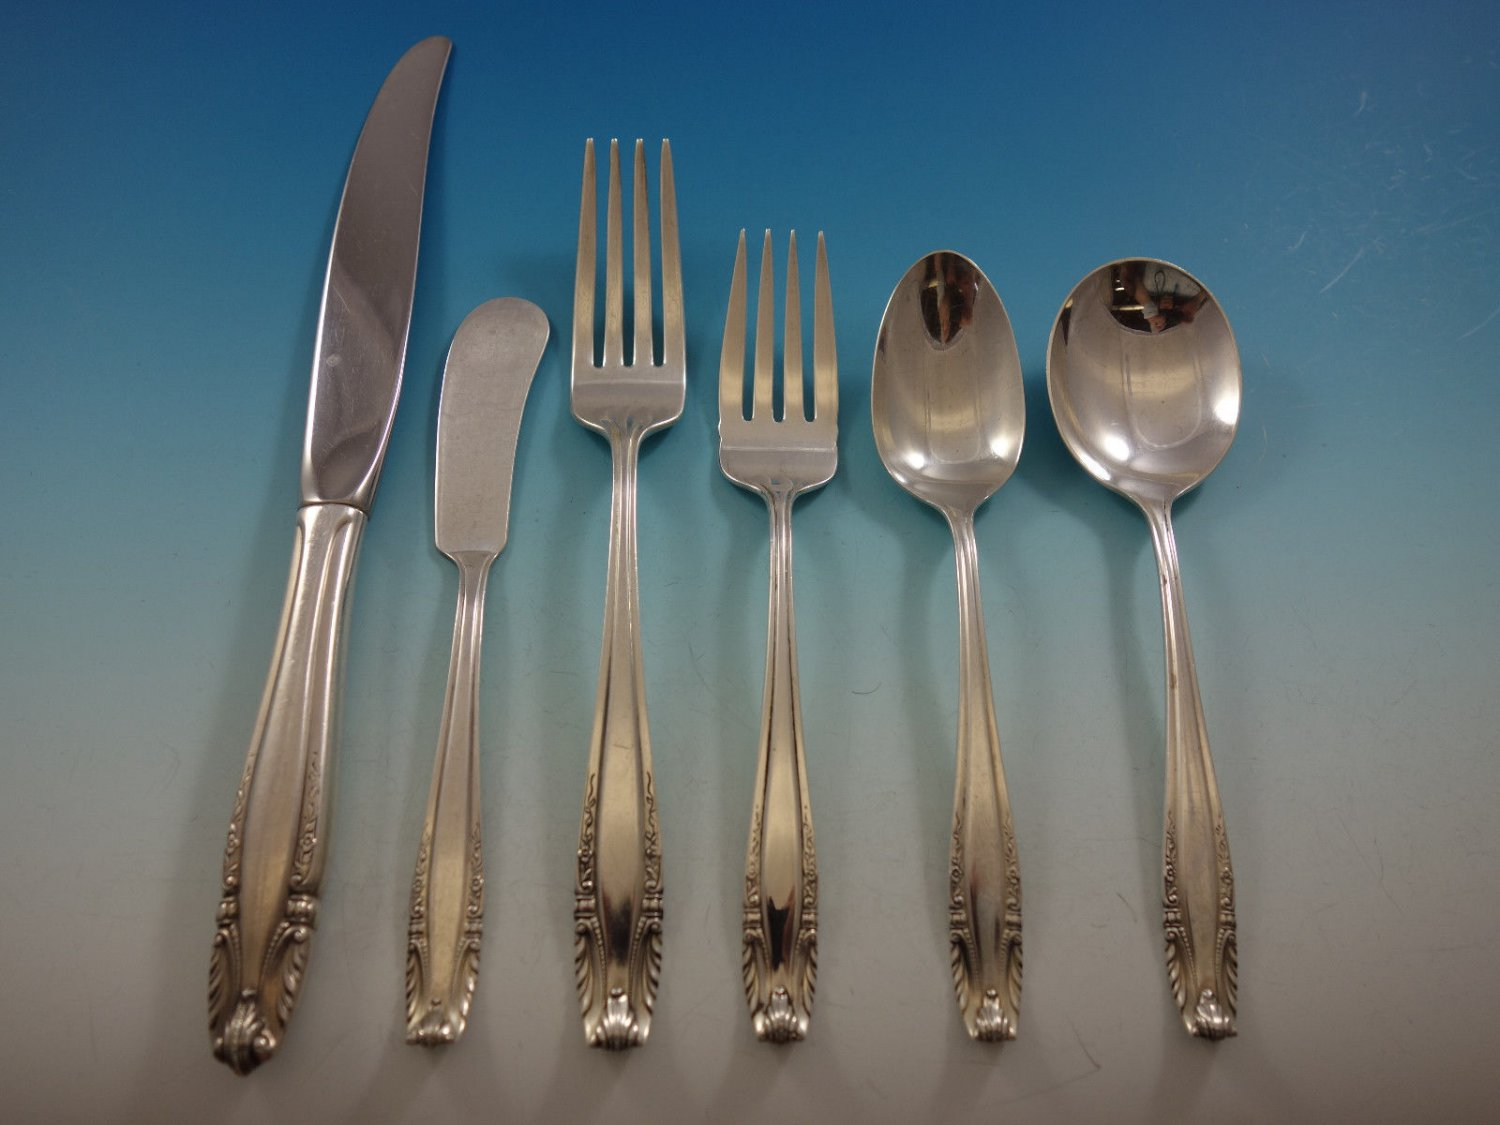 Stradivari by Wallace Sterling Silver Flatware Set For 12 Service 78 Pieces